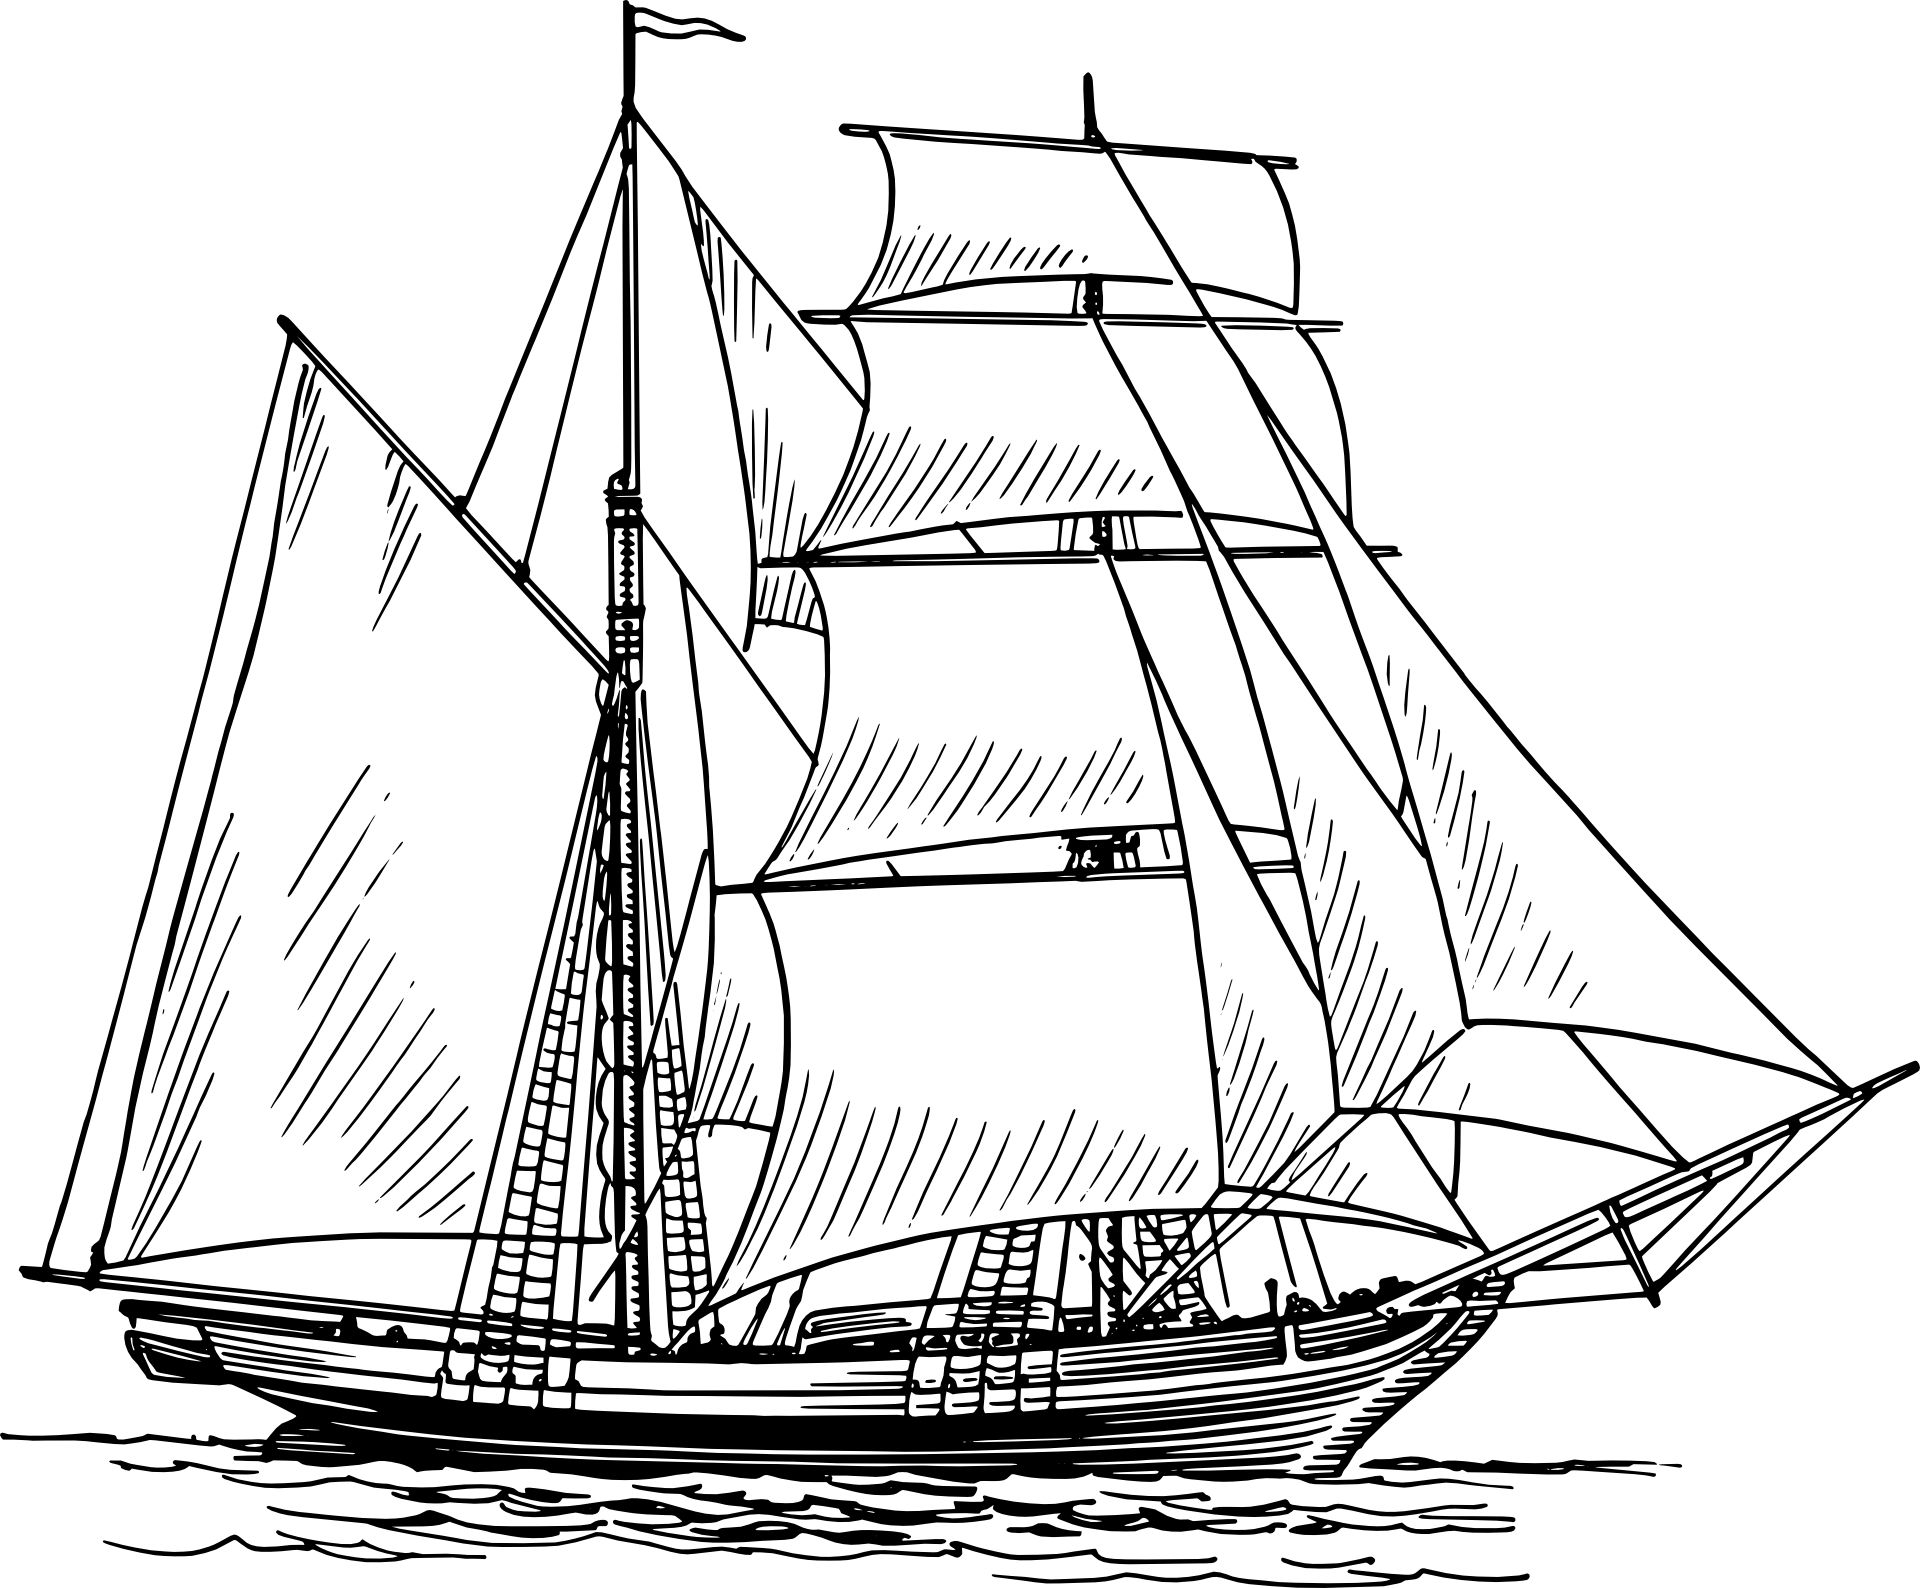 3 boats sailing away clipart freeuse library Historical Sailing Ships and Boats Coloring Pages | Clip Art ... freeuse library